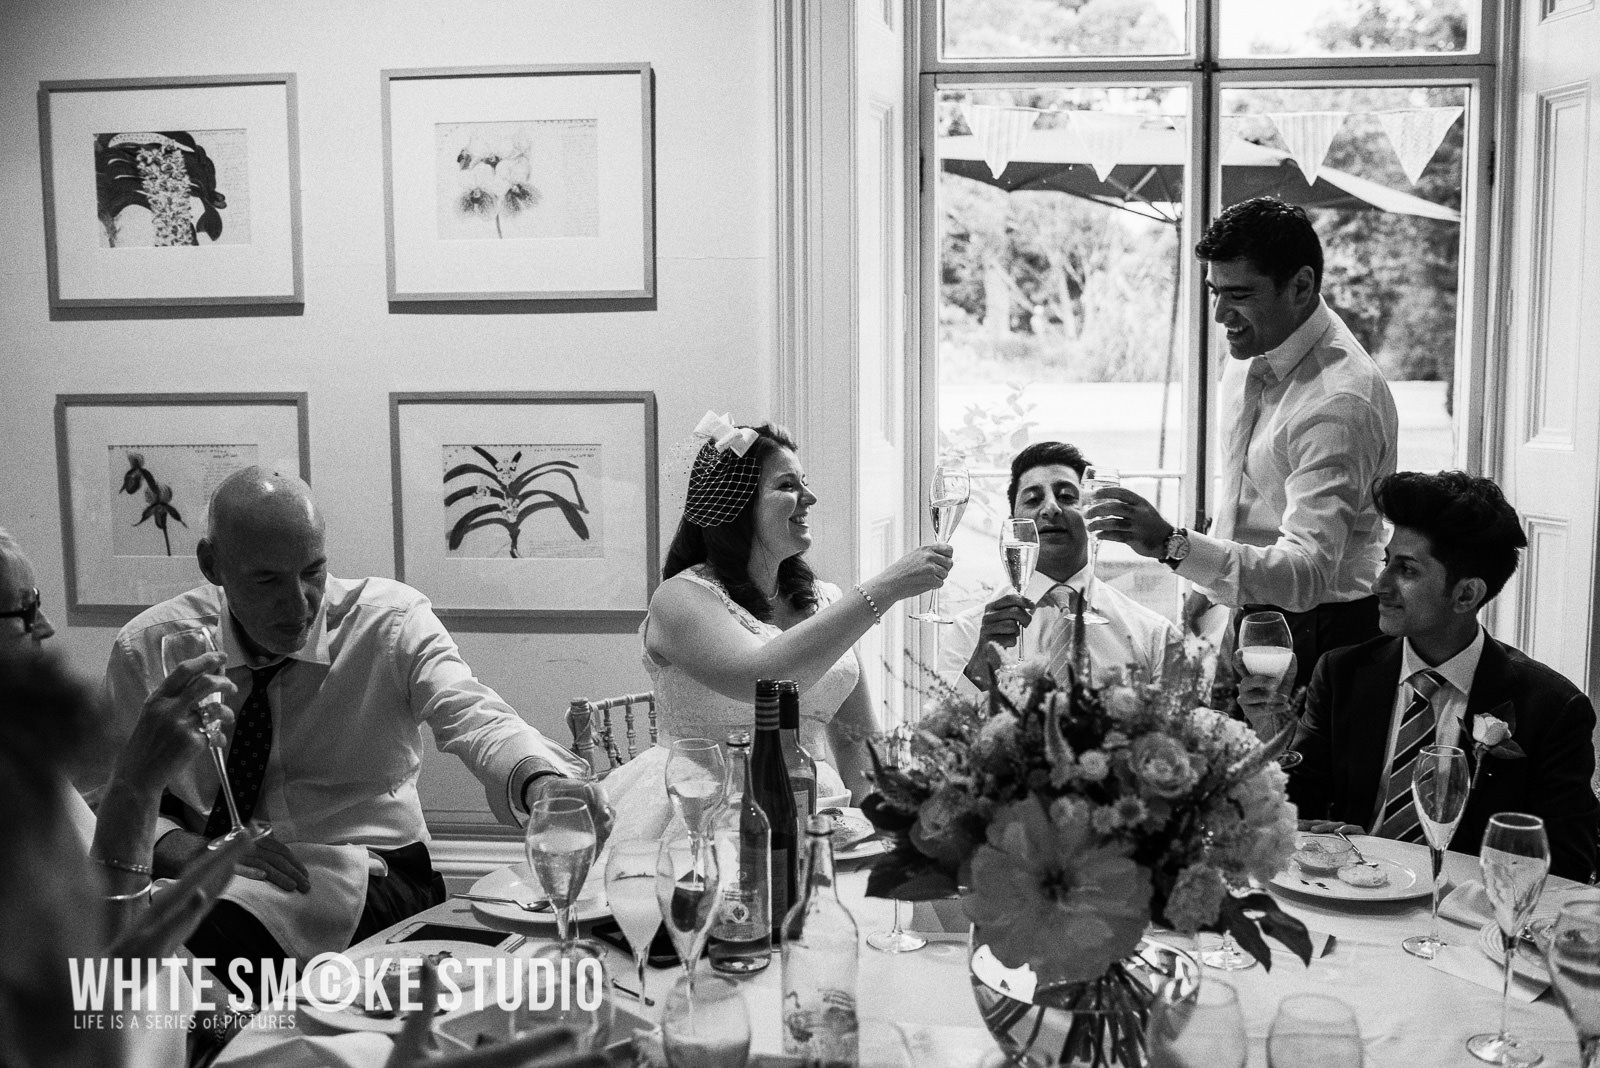 harriet_sanjeev_kew_garden_139_cambridge_cottage_wedding